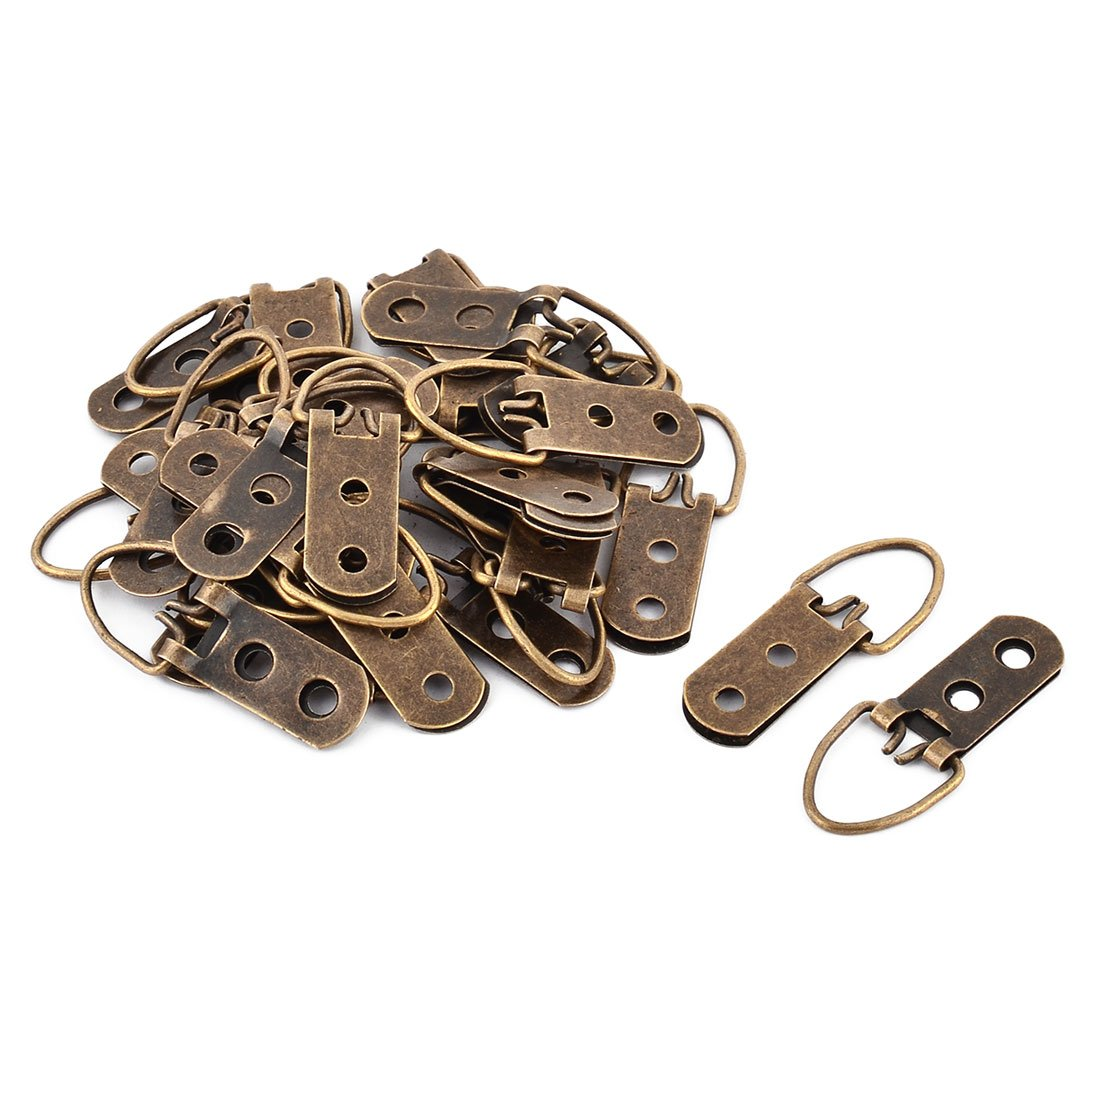 uxcell 49mm Length Triangle D-Ring Picture Frame Hanging Hangers Hooks Bronze Tone 30 PCS